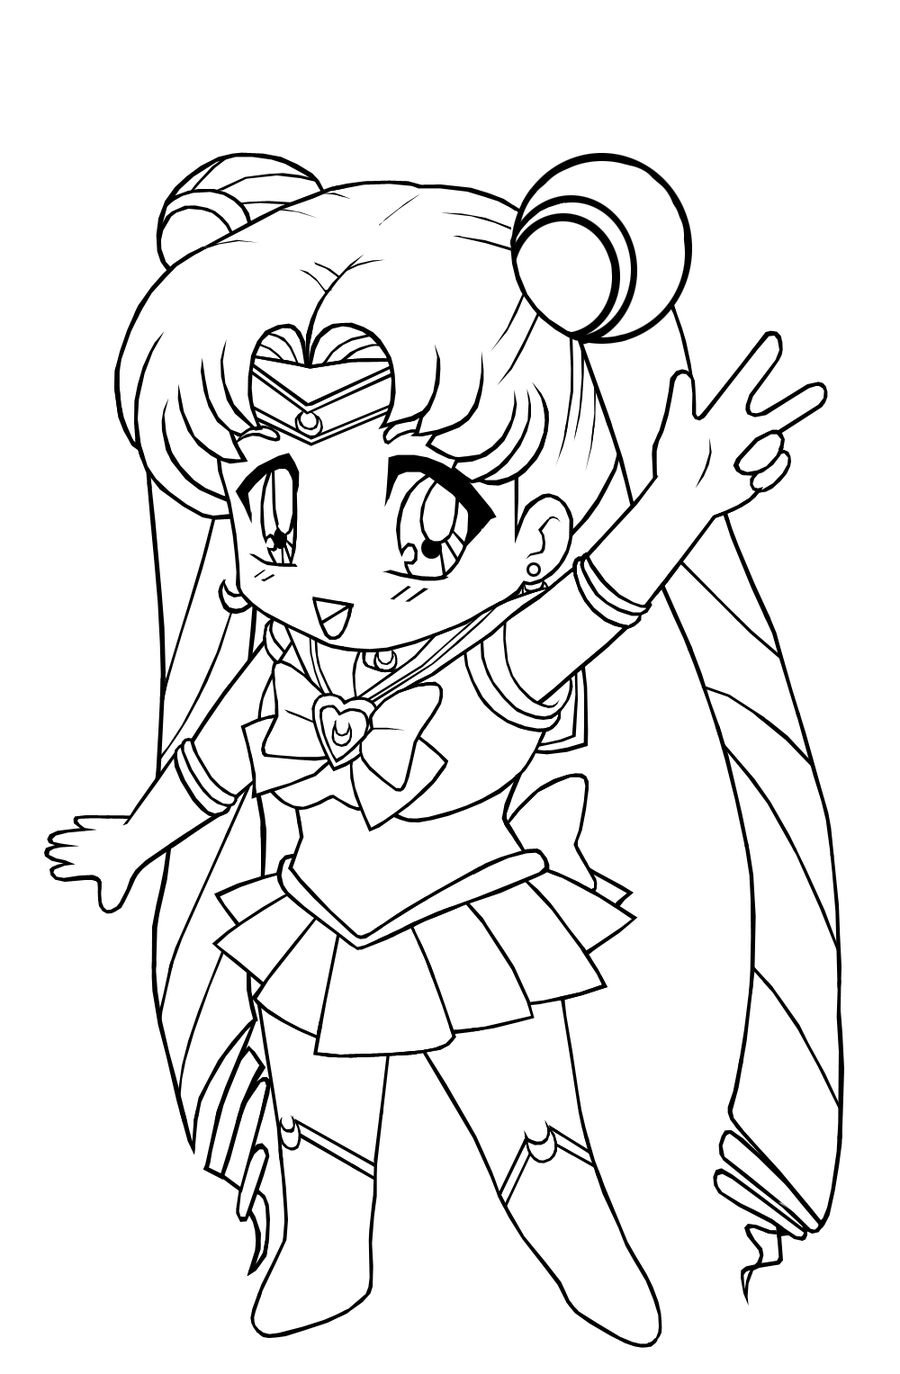 anime girl coloring page coloring pages for girls free download on clipartmag girl coloring page anime